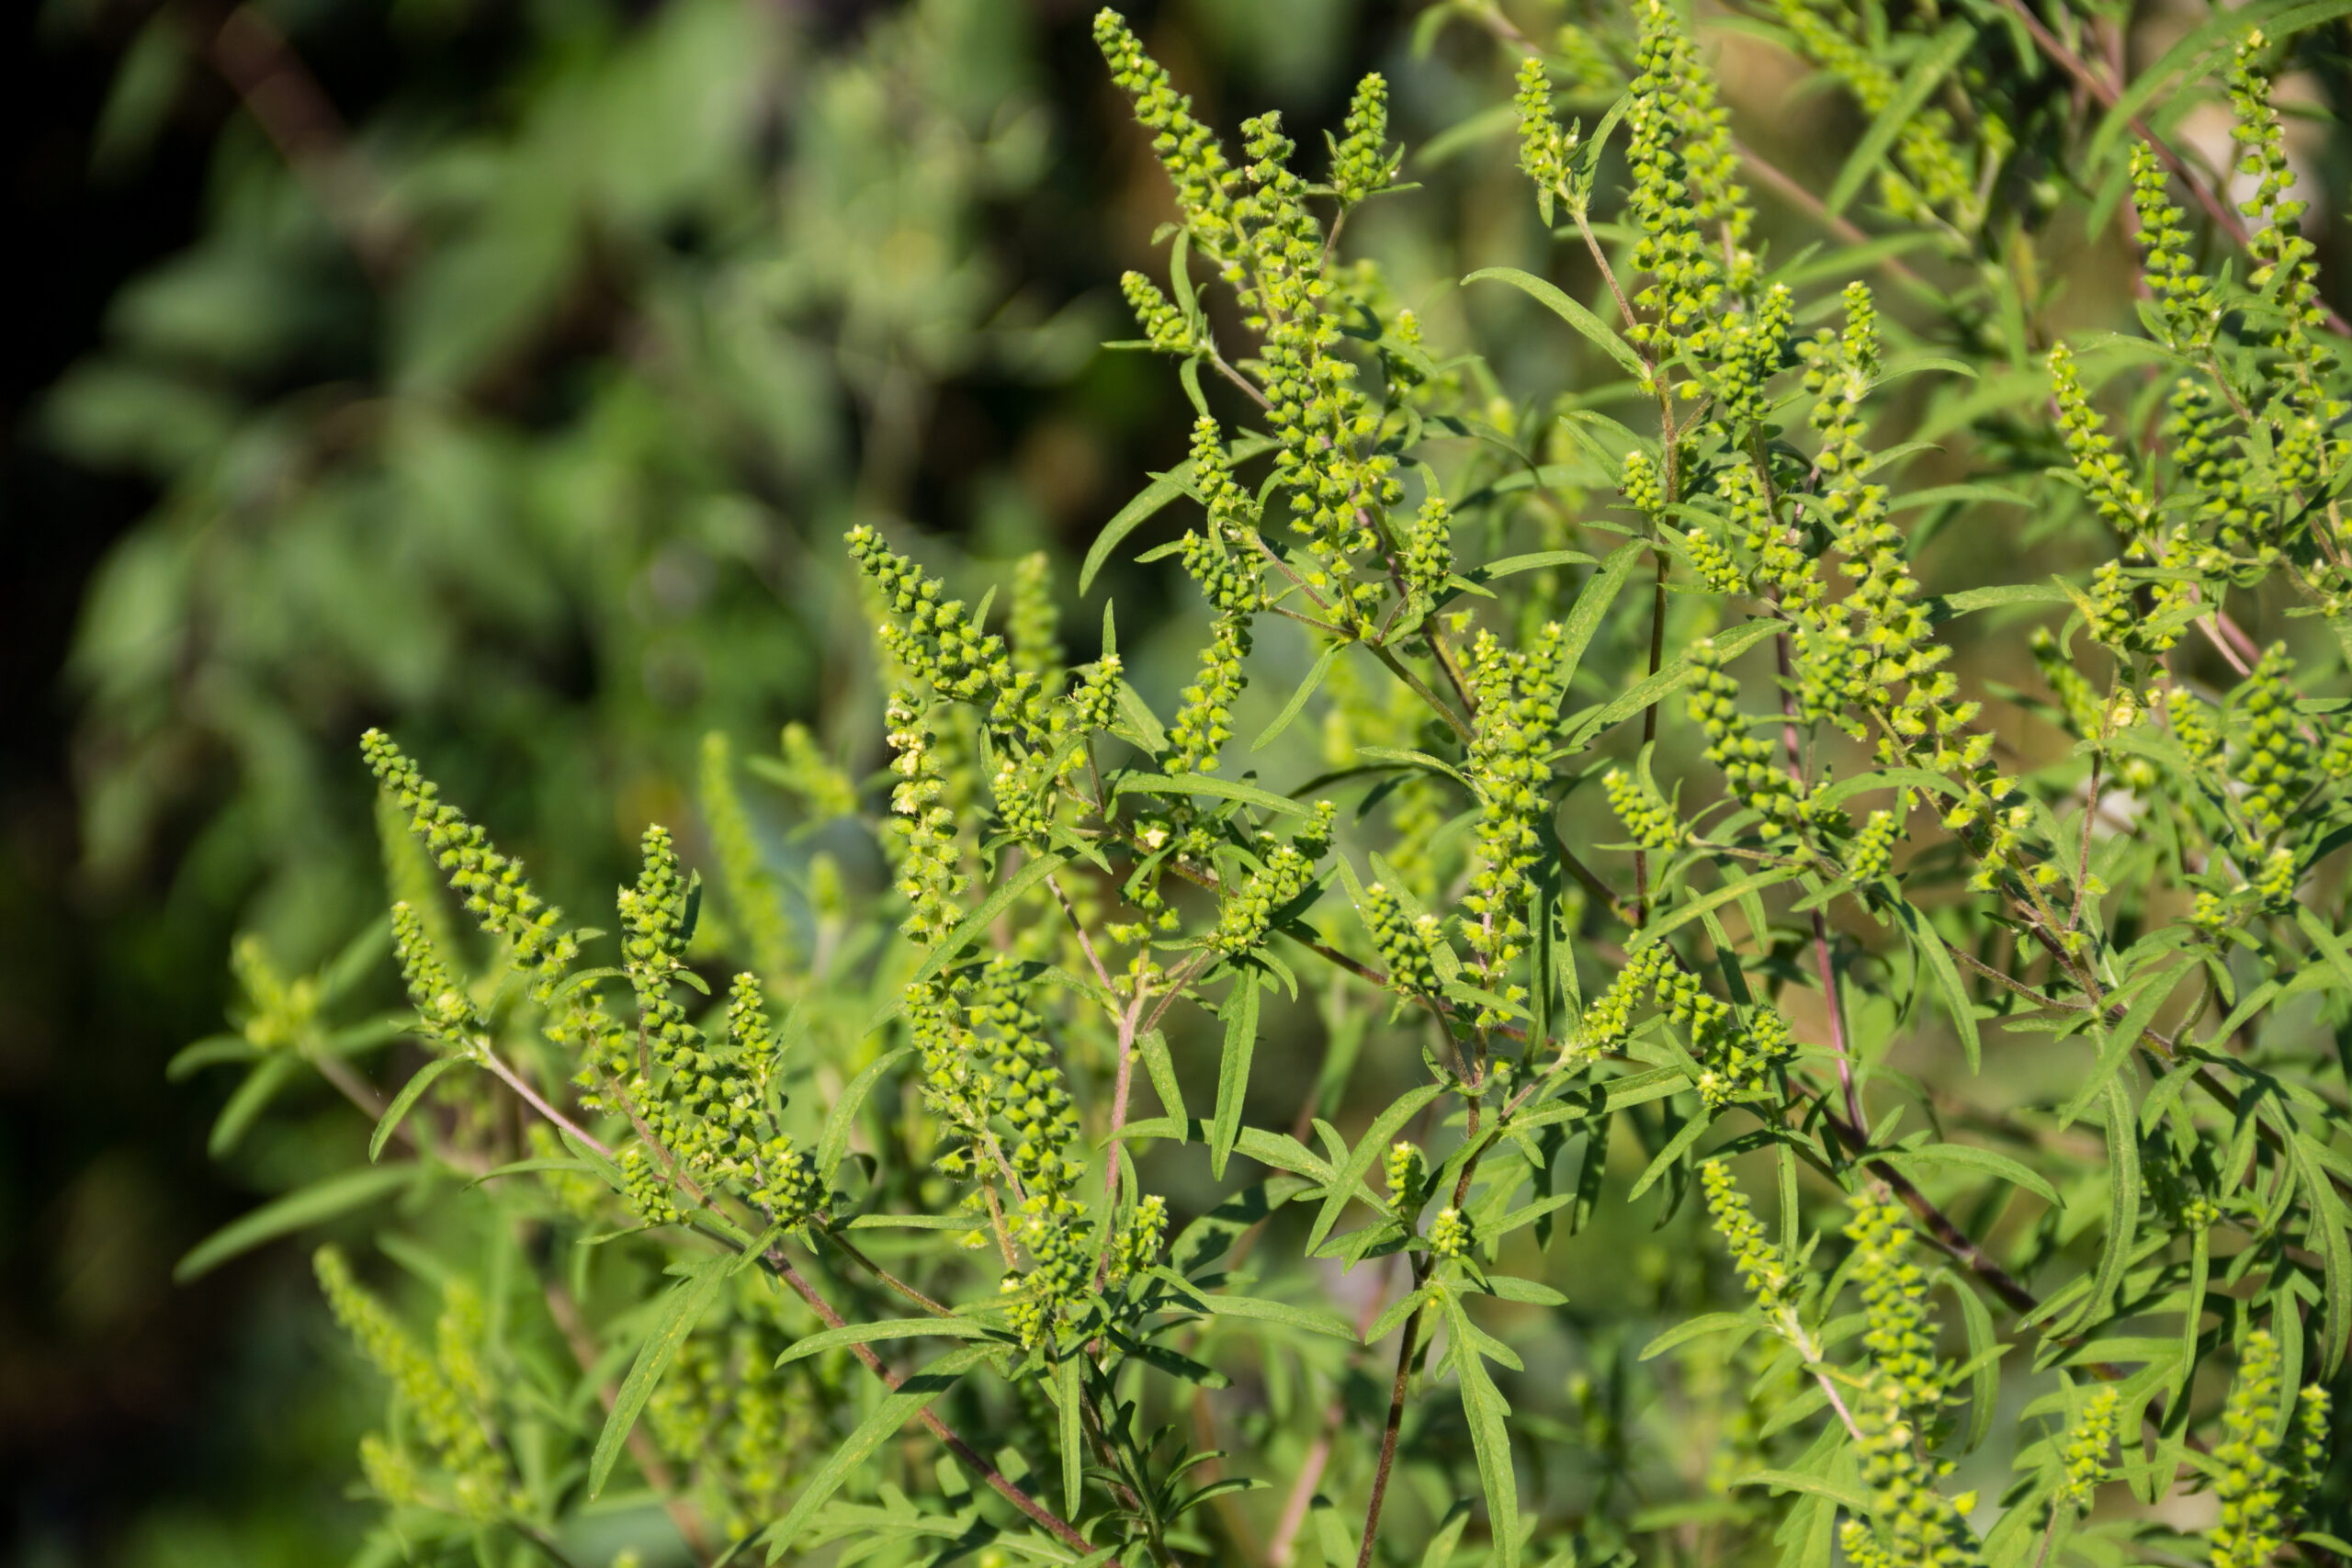 Ragweed plants